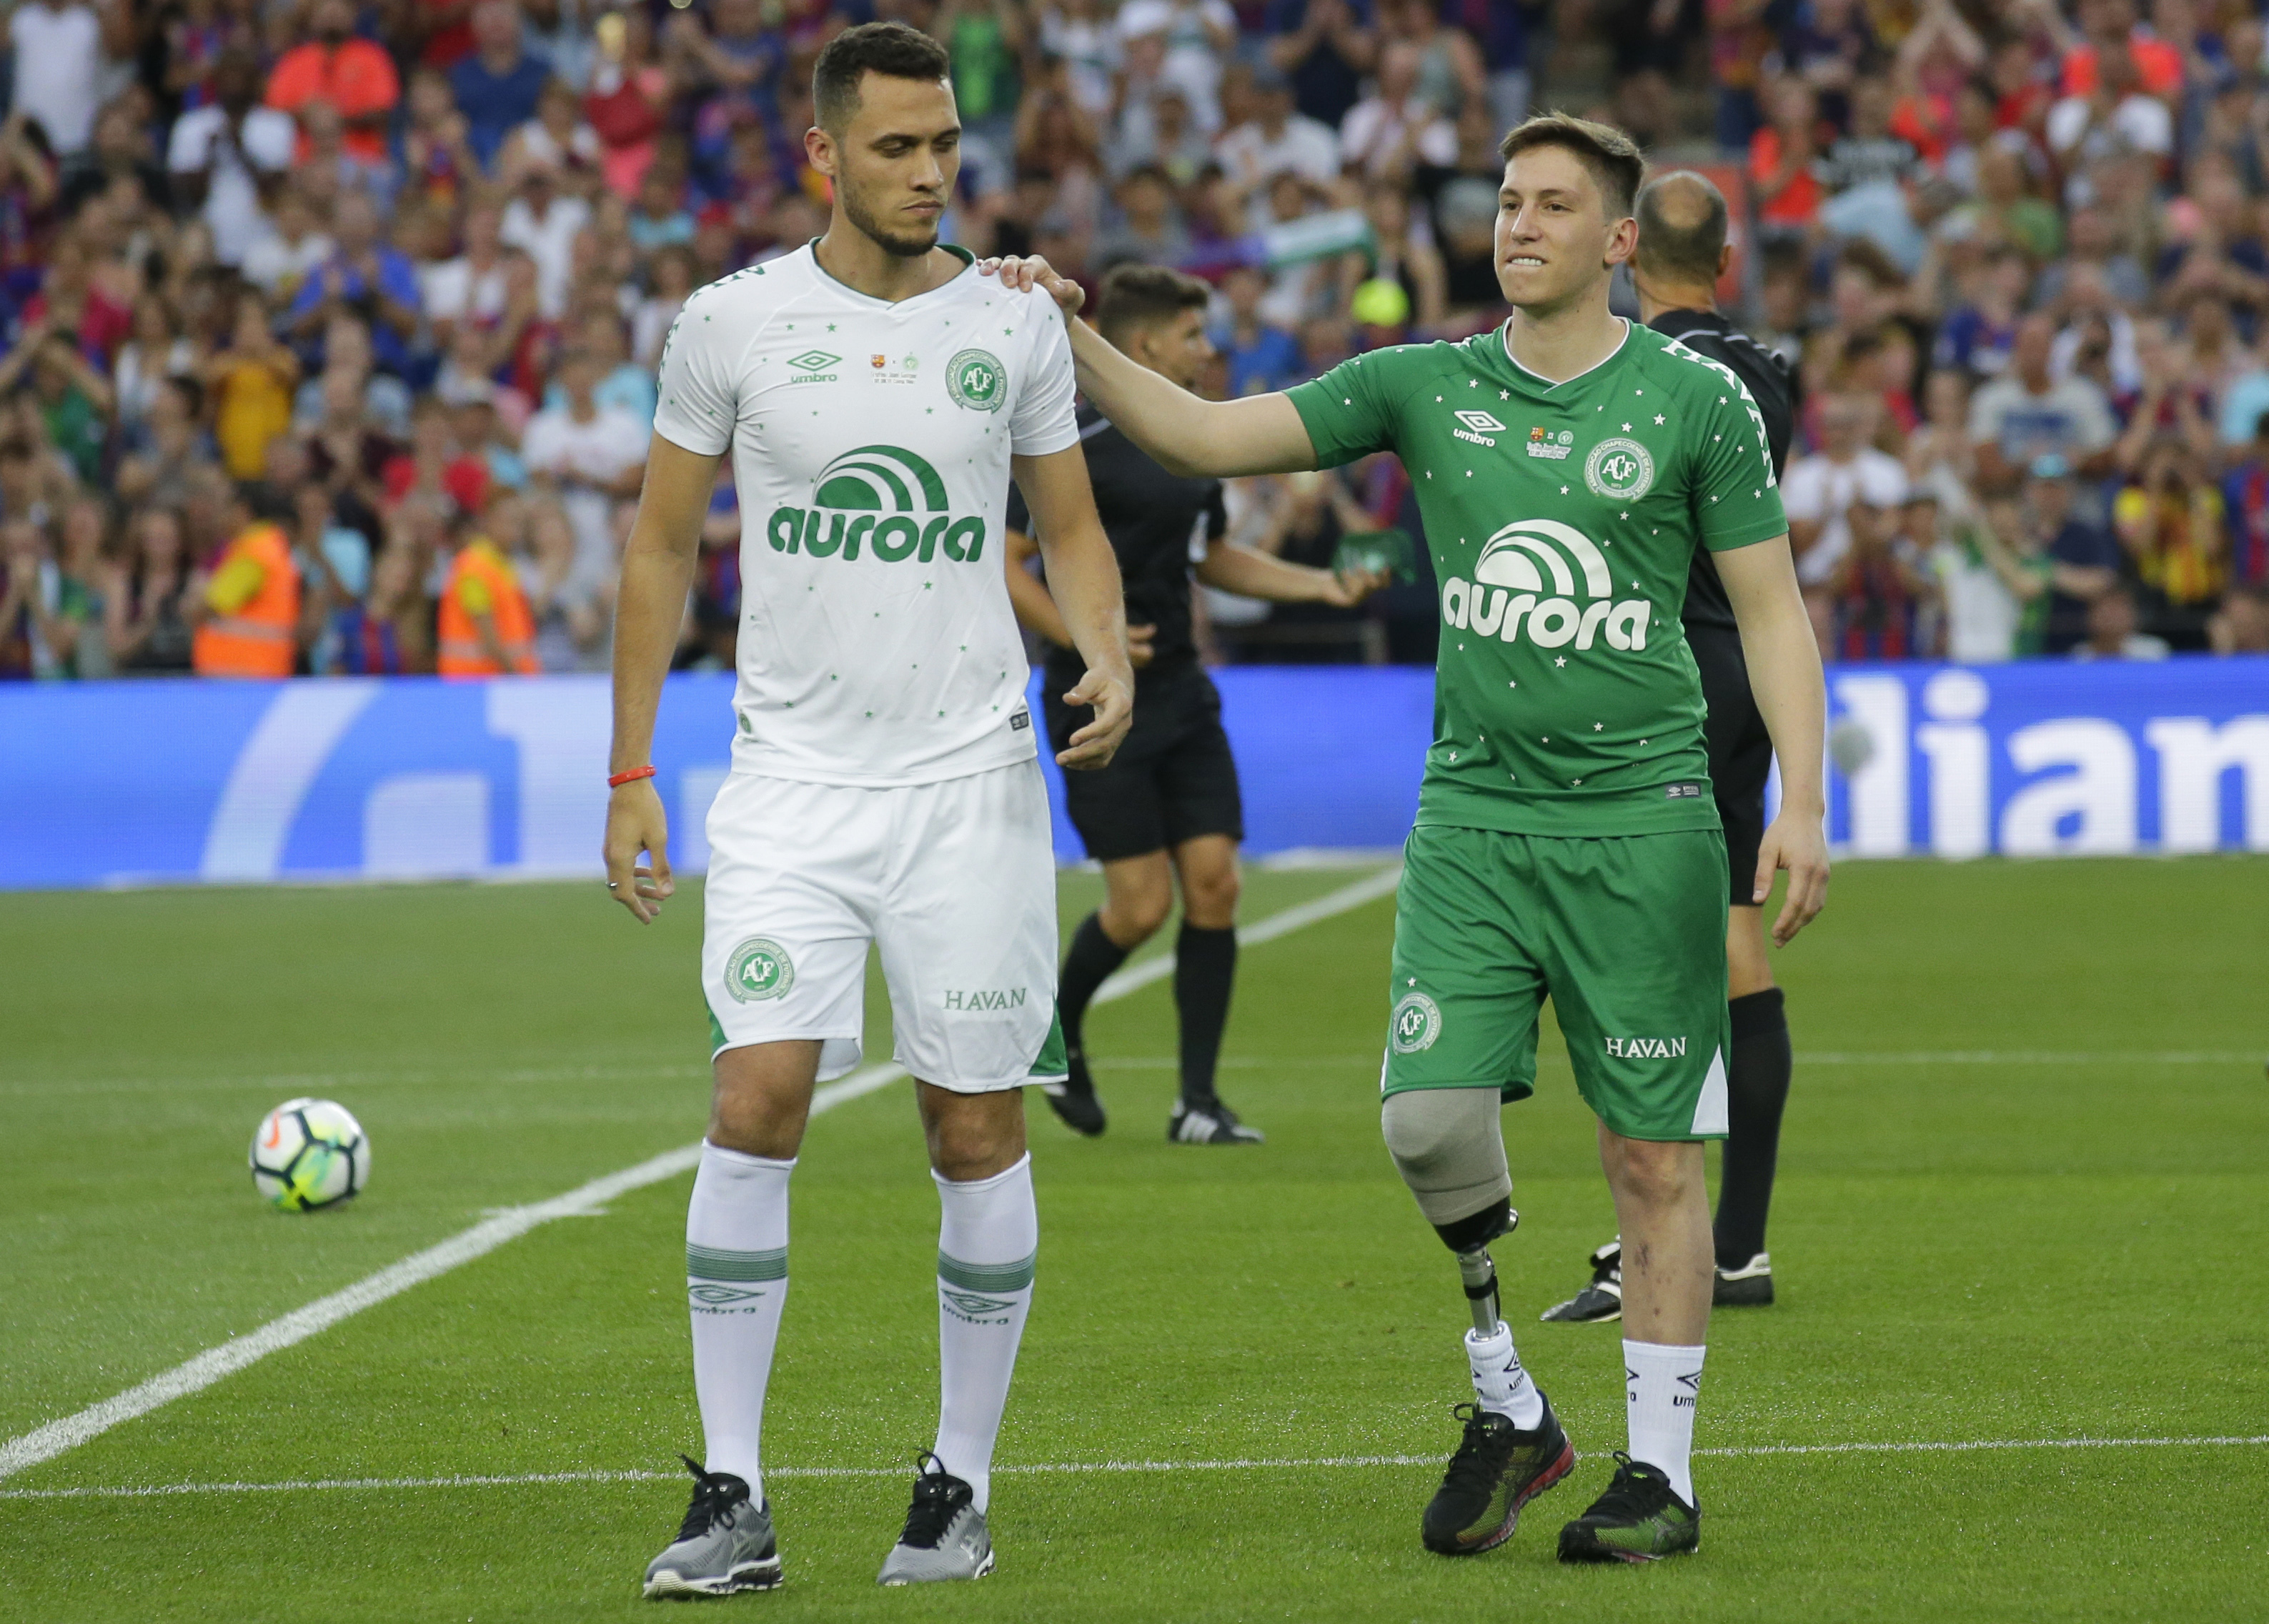 Chapecoense's Neto and Jakson Follmann